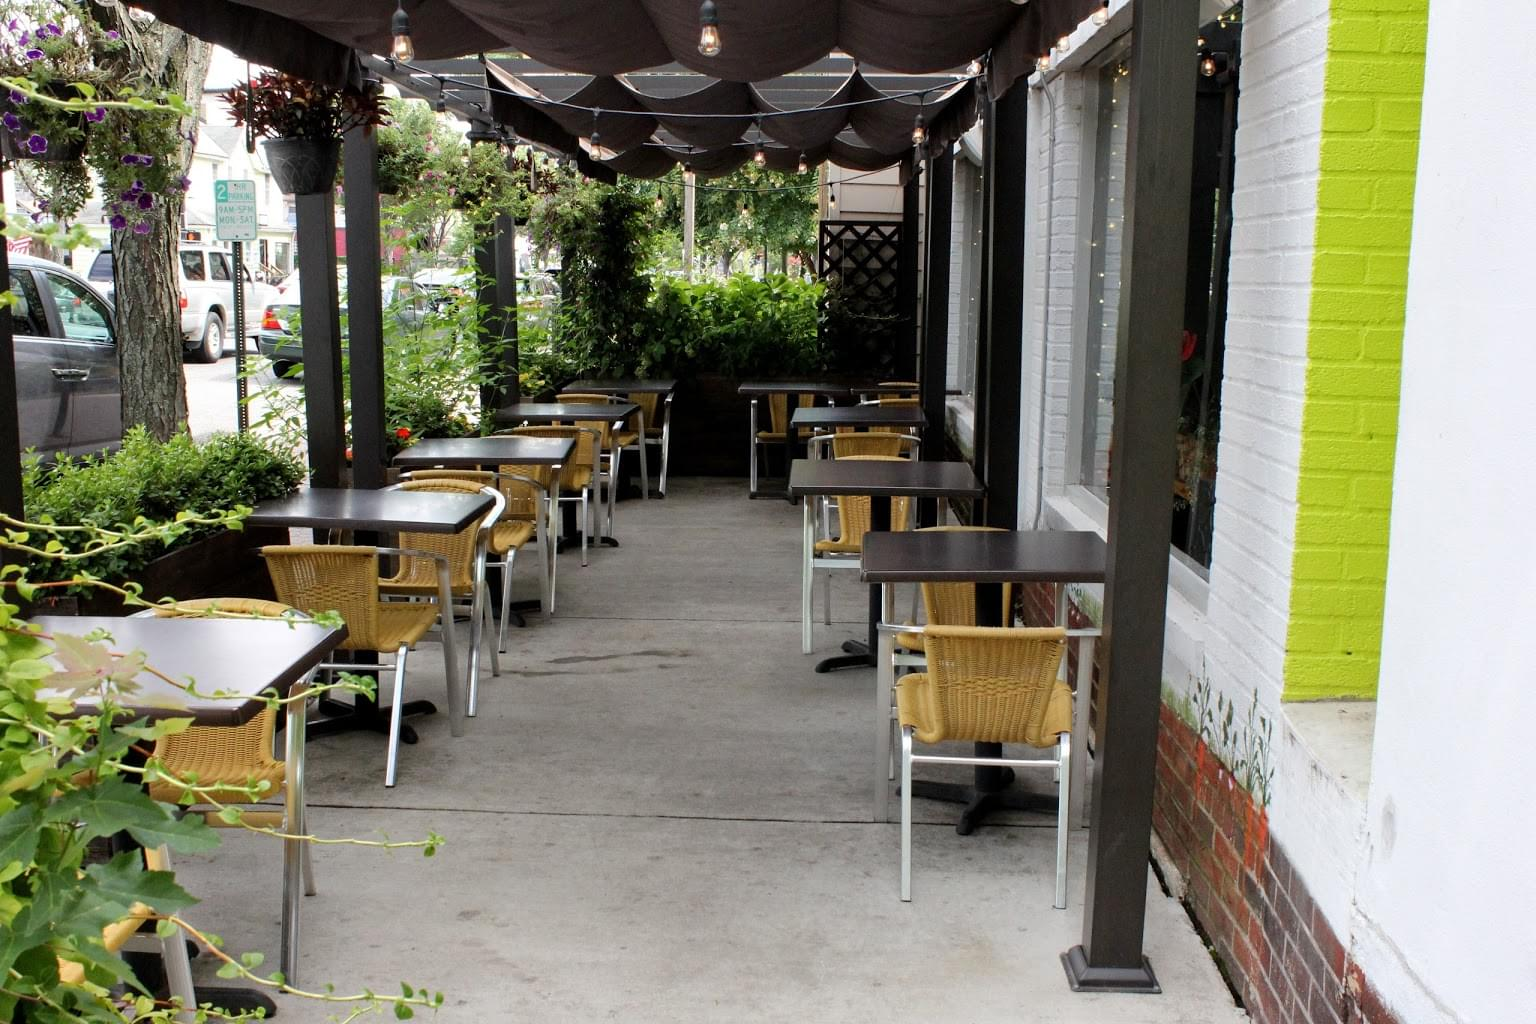 Bon Vivant Cafe + Farm Market Alexandria, VA Cafe outdoor tables